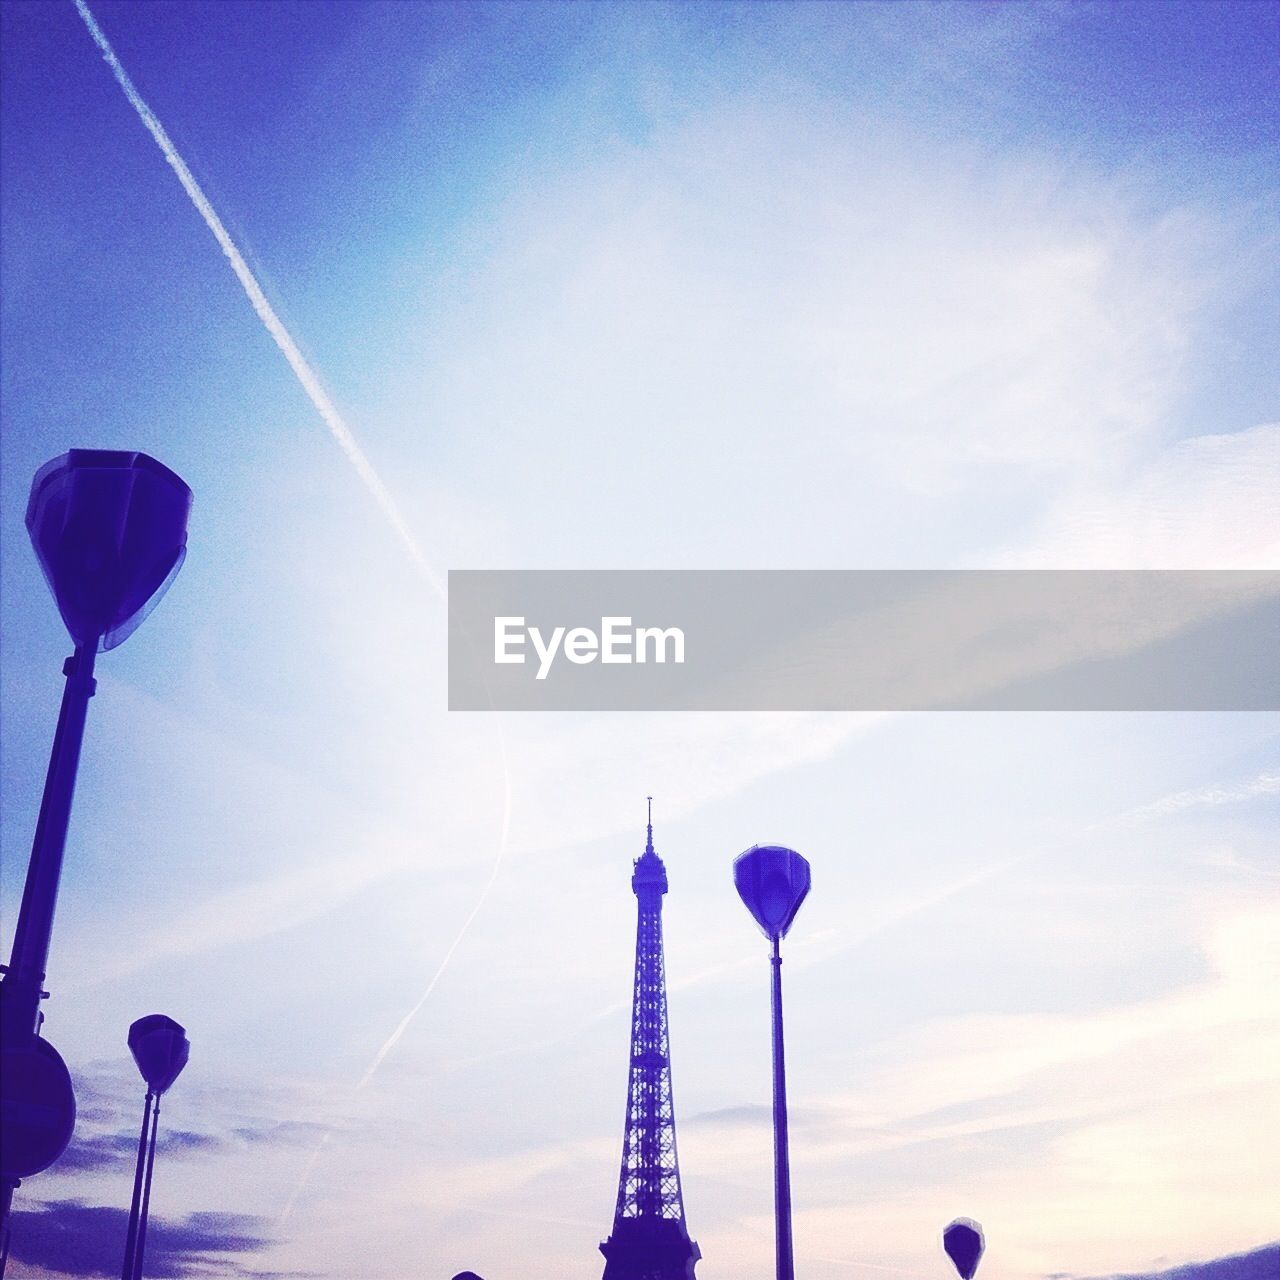 Eiffel Tower and lamp posts against sky